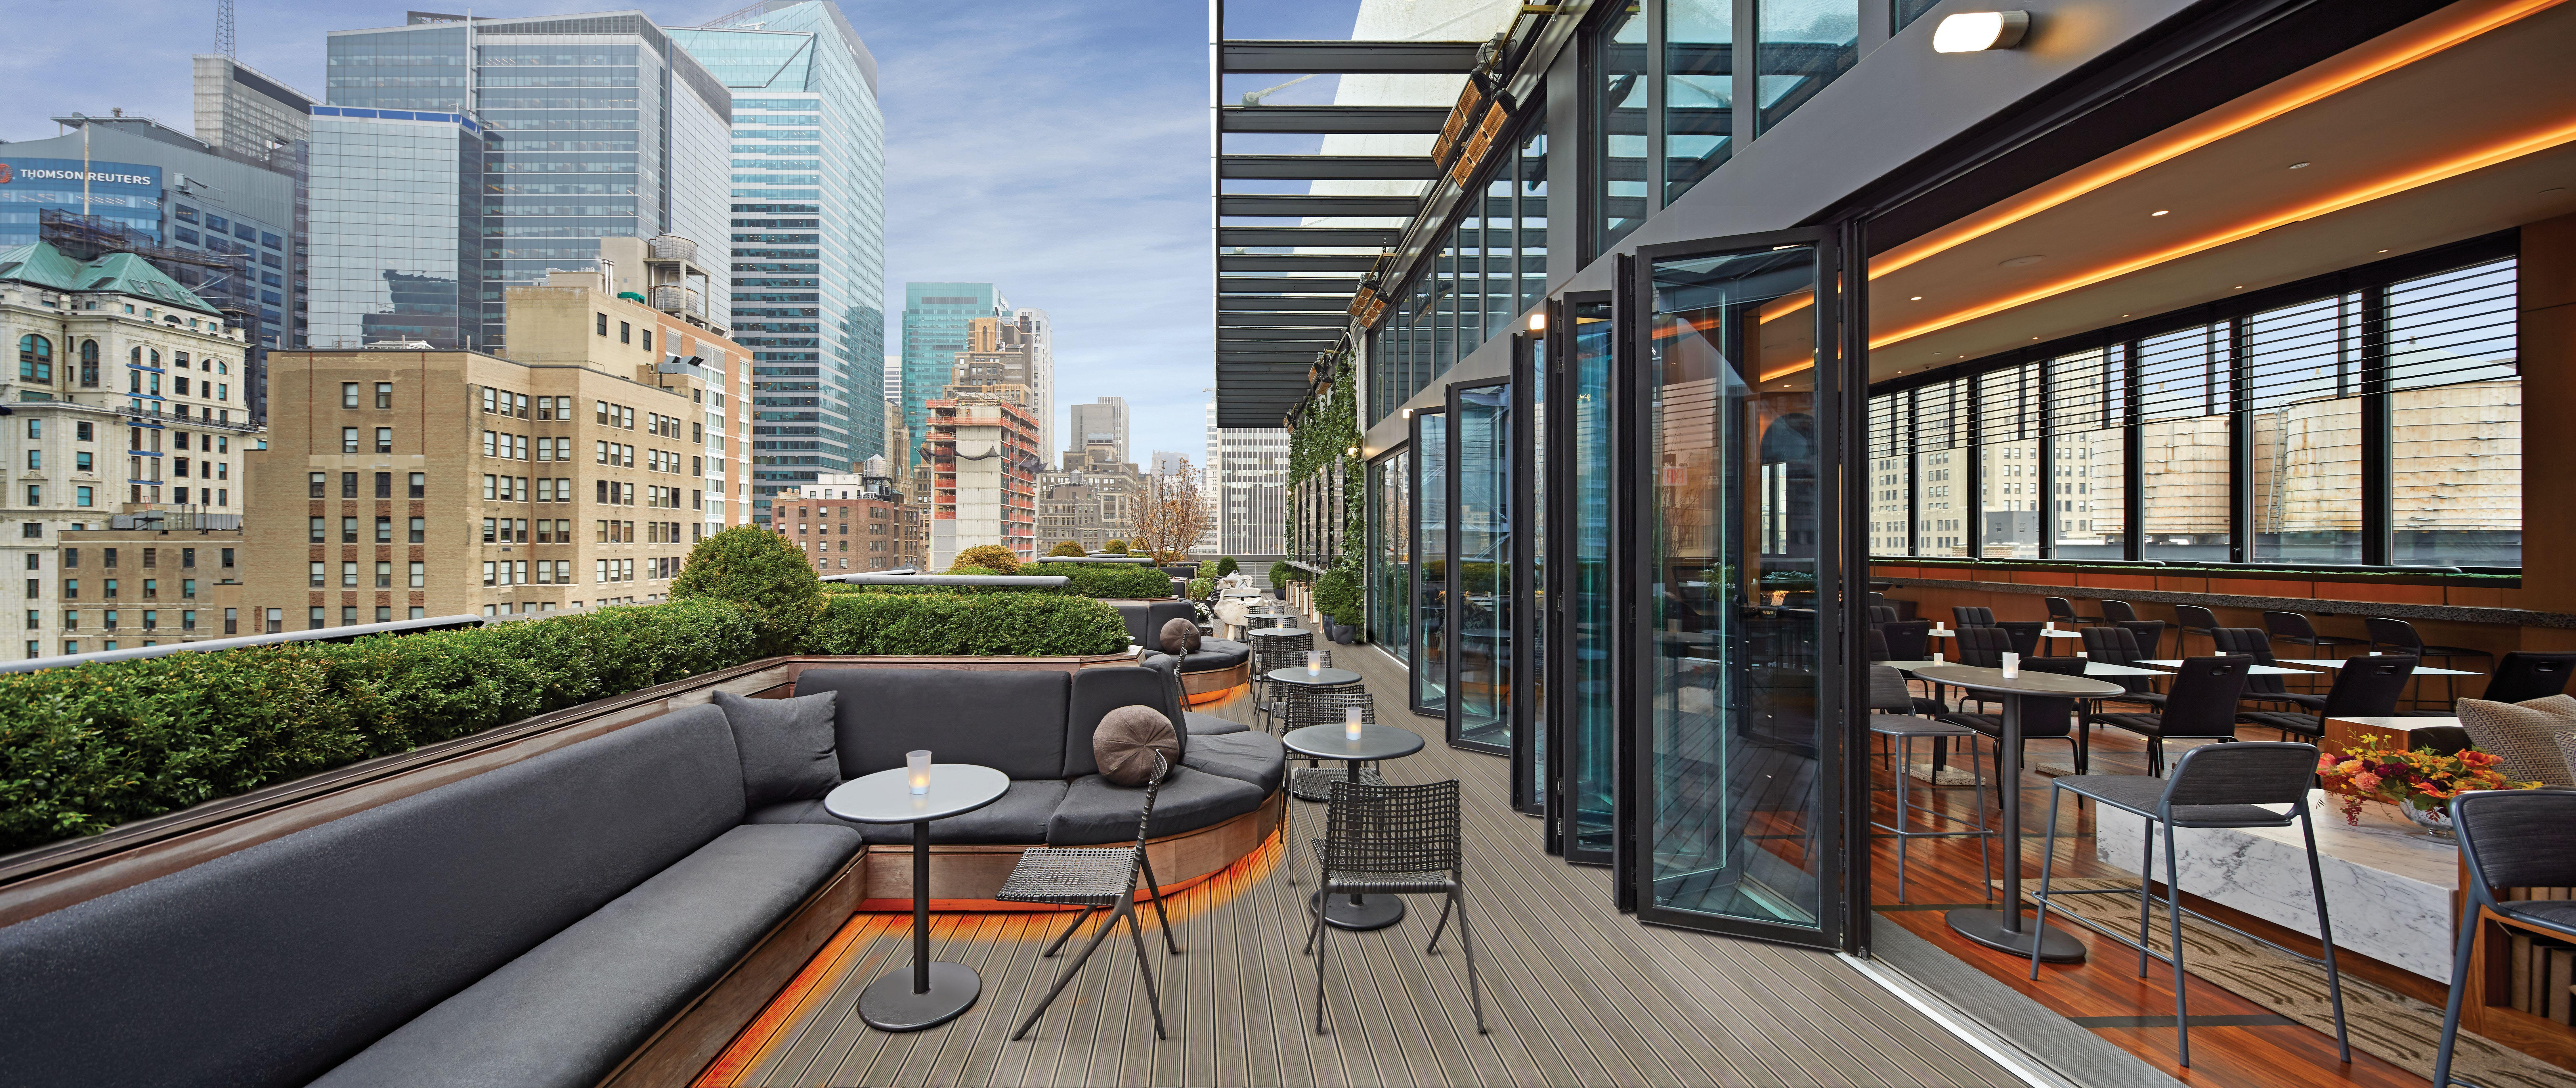 rooftop bar and restaurant in new york city with folding glass walls open to the balcony